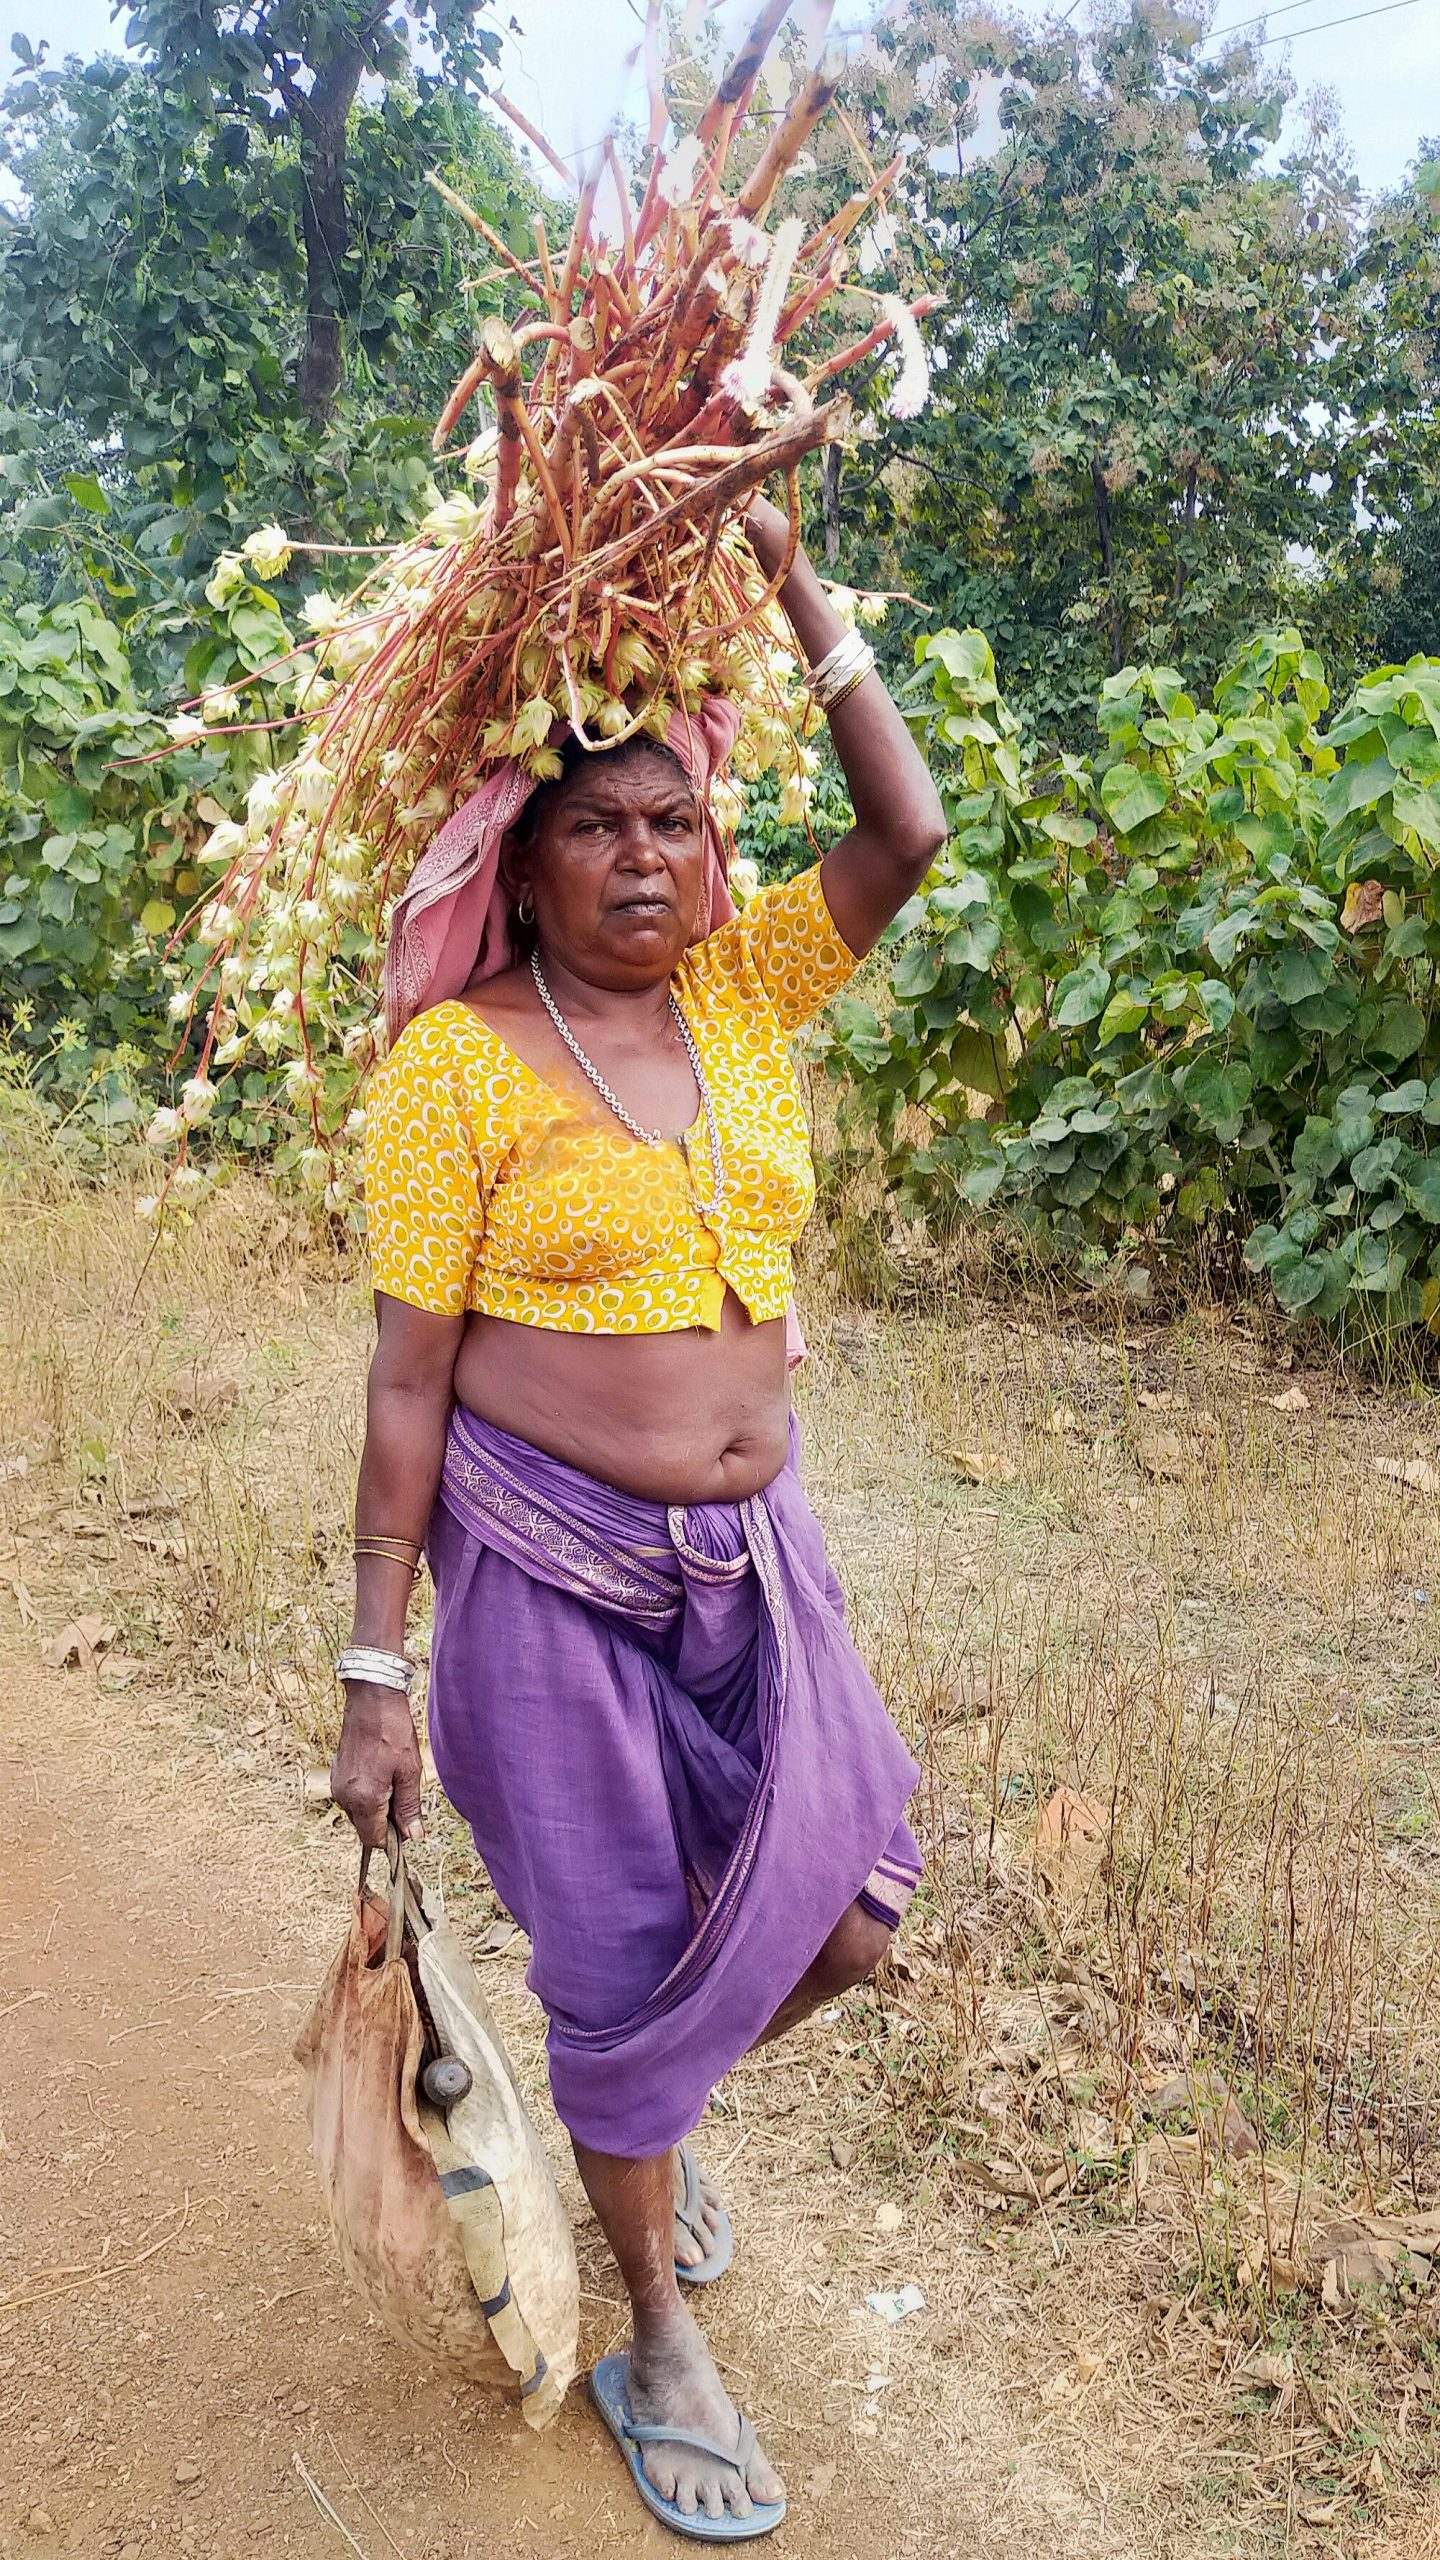 A village woman carrying fodder